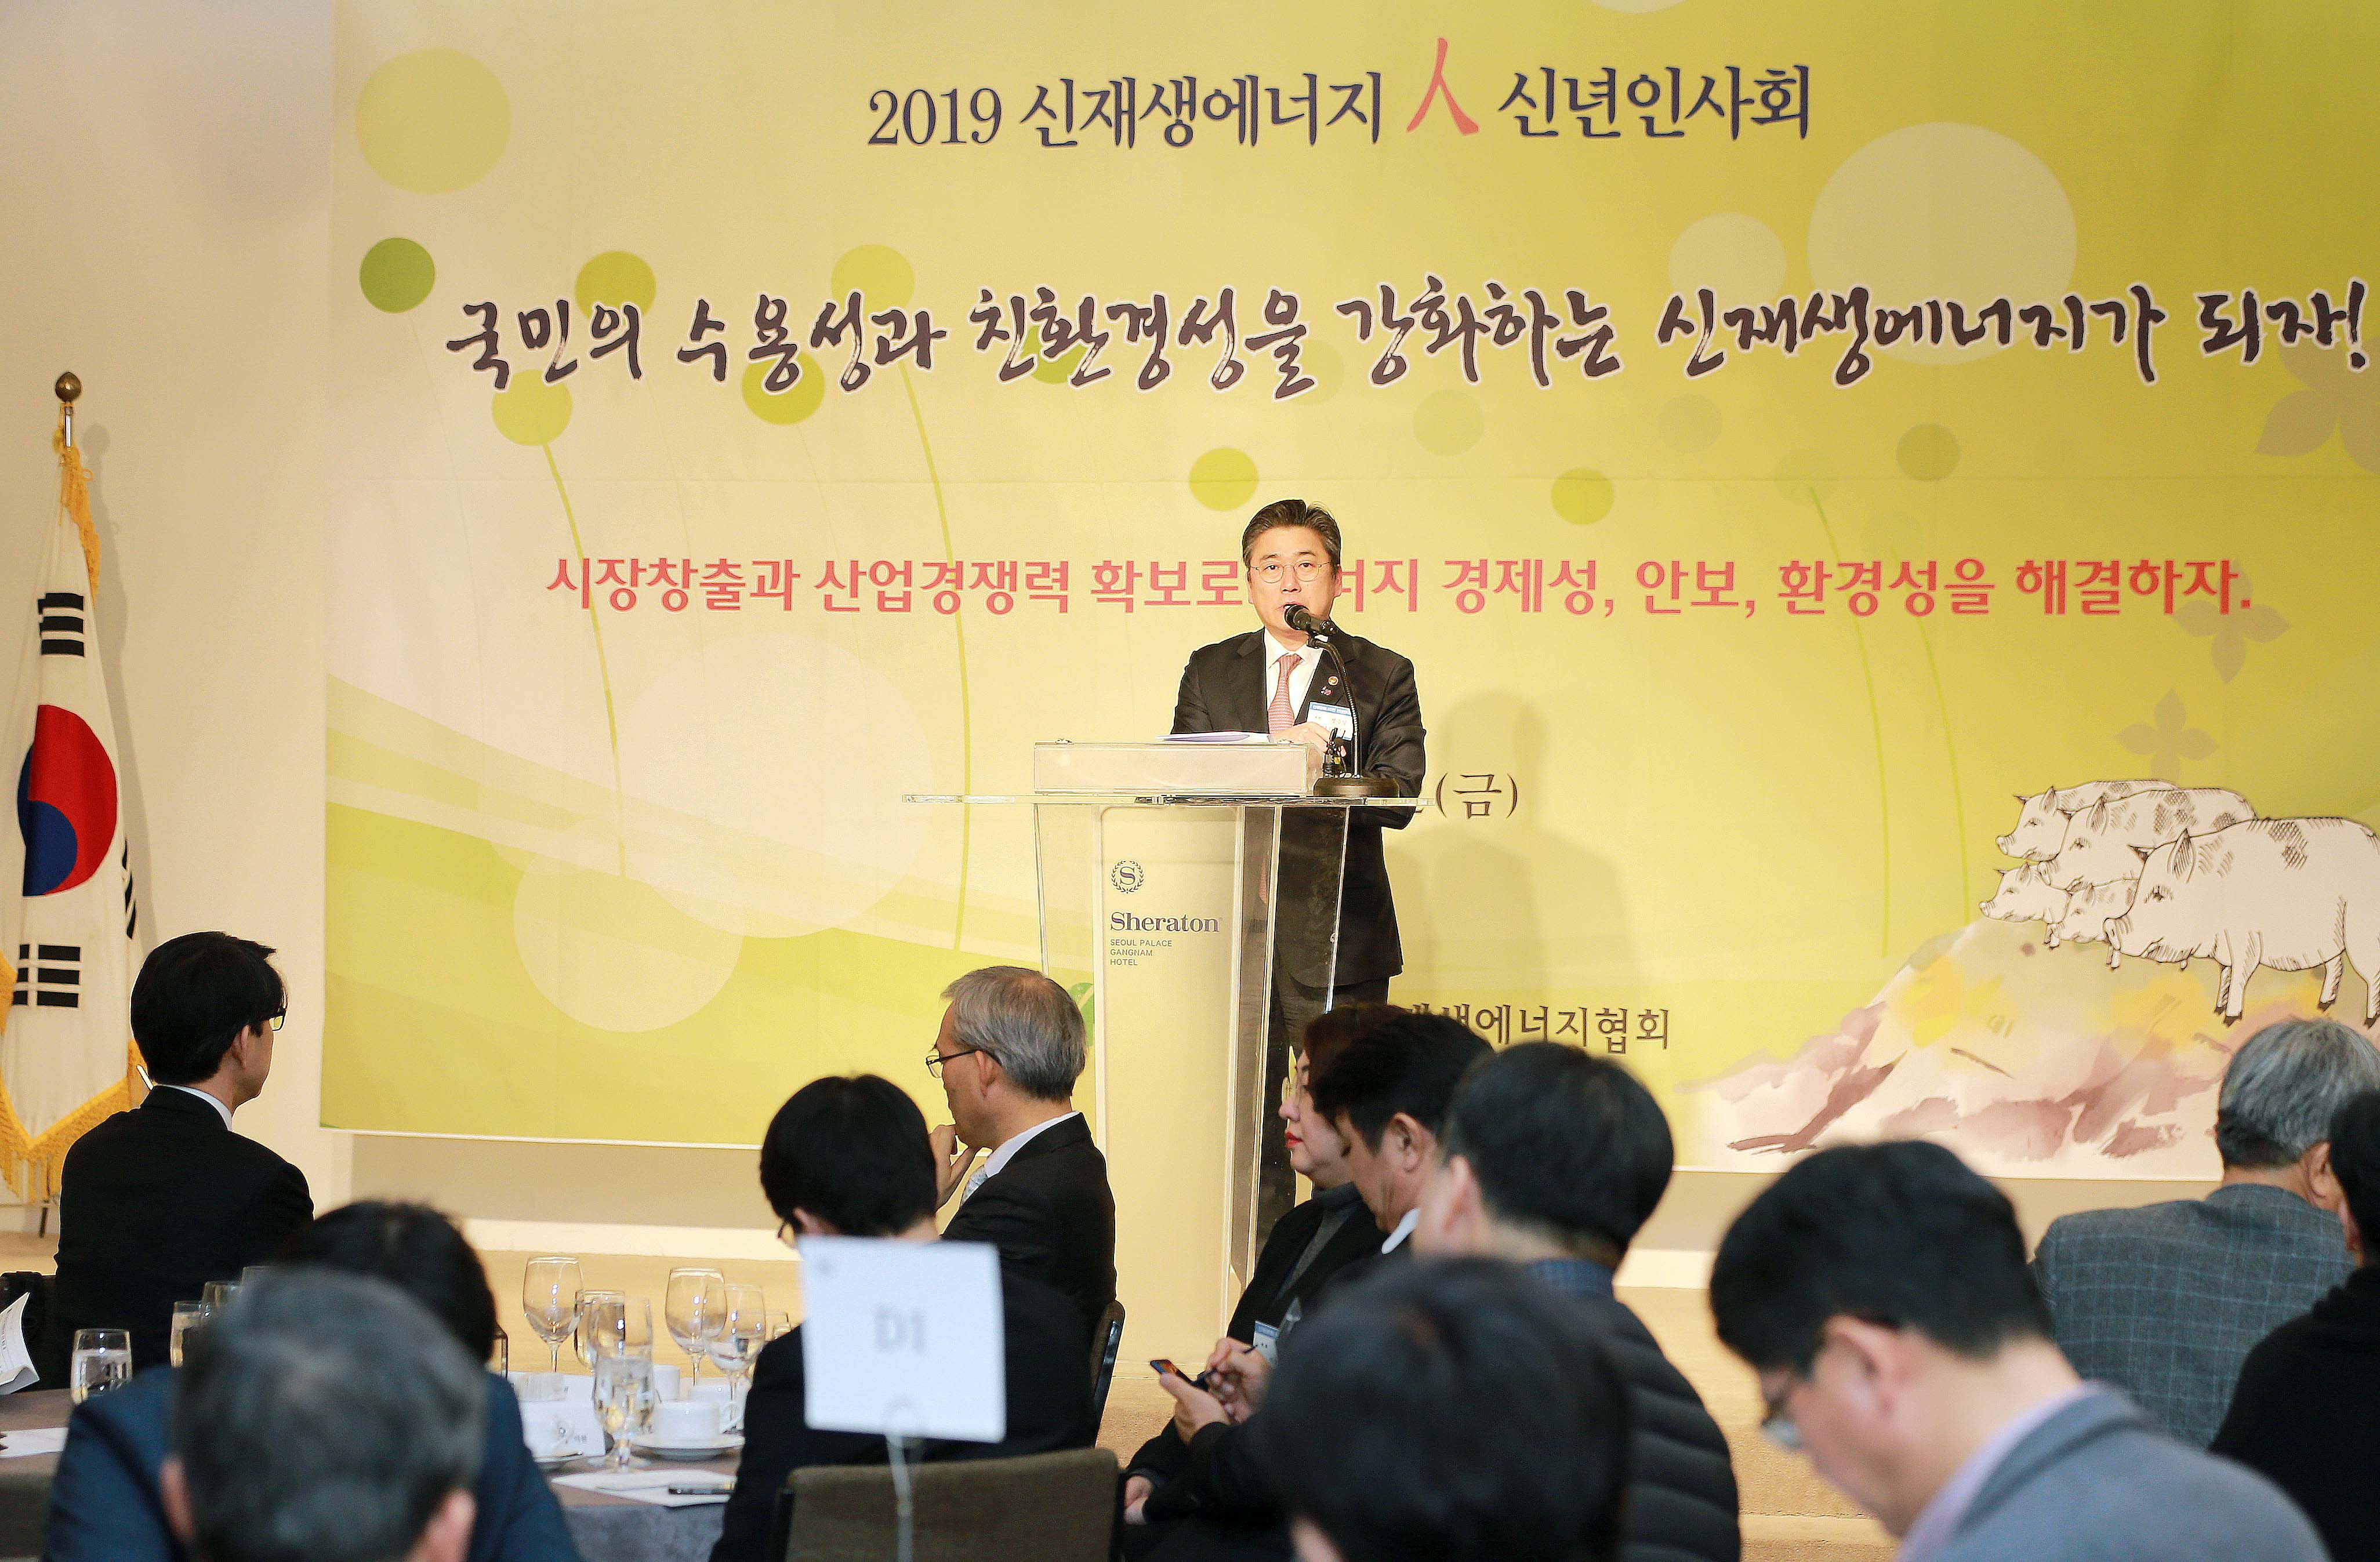 Vice Minister Cheong gives New Year's address to representatives of new, renewable energy industry